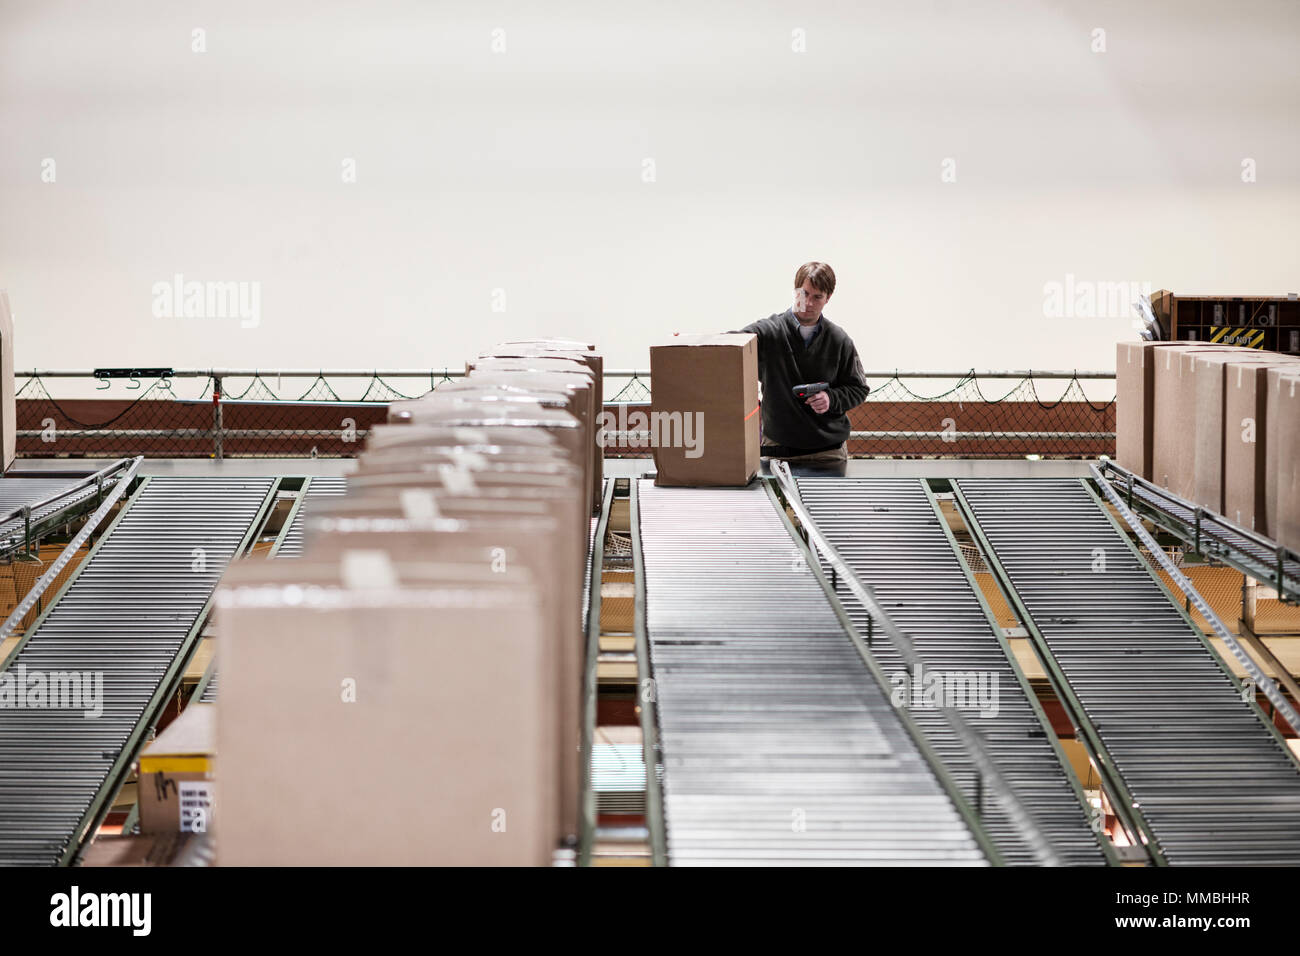 Causcasian warehouse worker in a large distribution warehouse, showing products stored in cardboard boxes, and moving on a motorized converyor system. - Stock Image